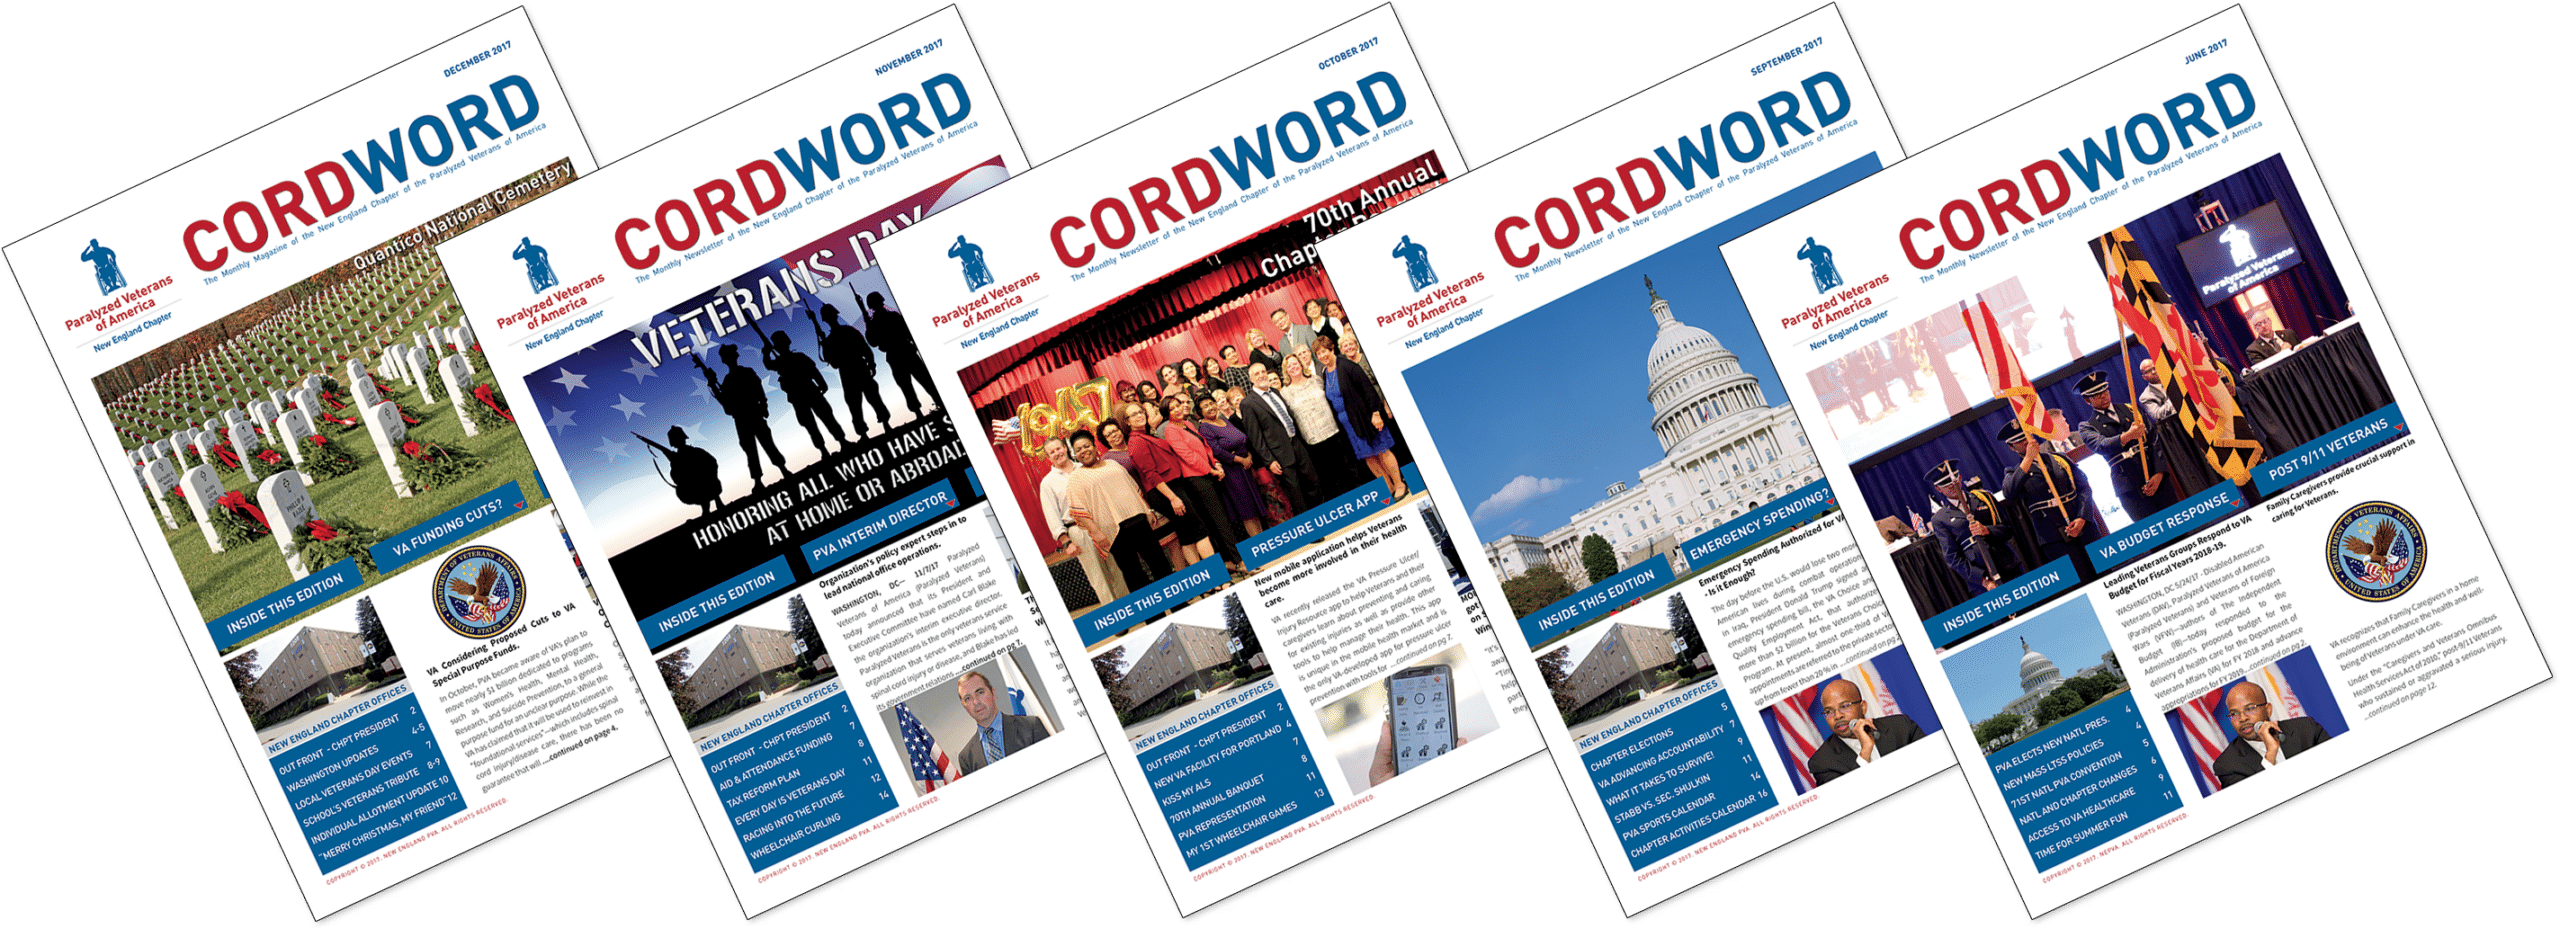 CordWord Newsletters